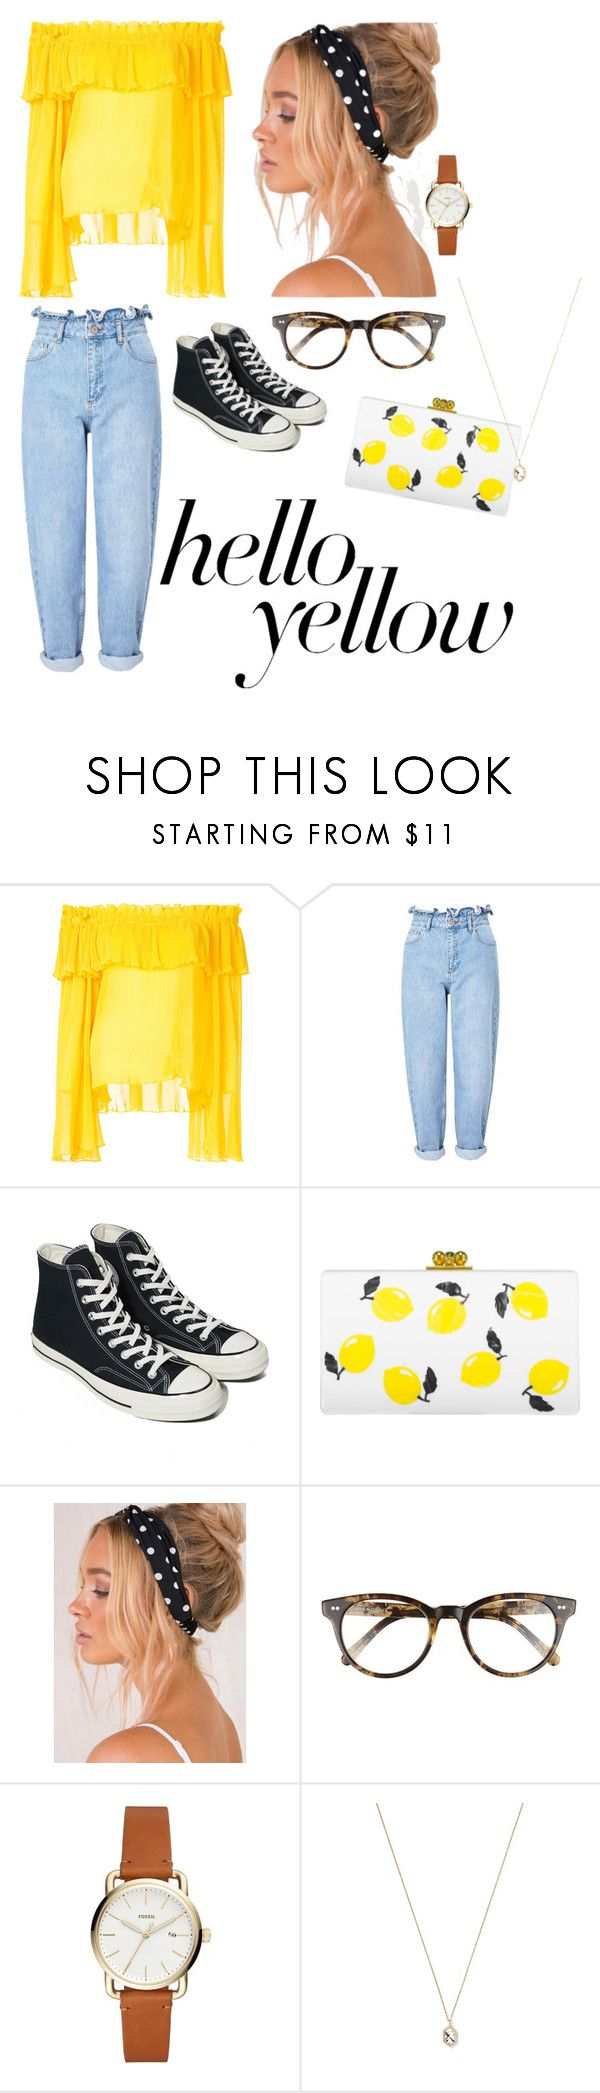 """""""Contest Entry - Pops of Yellow"""" by seasonalbliss on Polyvore featuring Alice McCall, Miss Selfridge, Converse, Edie Parker, Corinne McCormack, Eva Fehren, PopsOfYellow and NYFWYellow"""